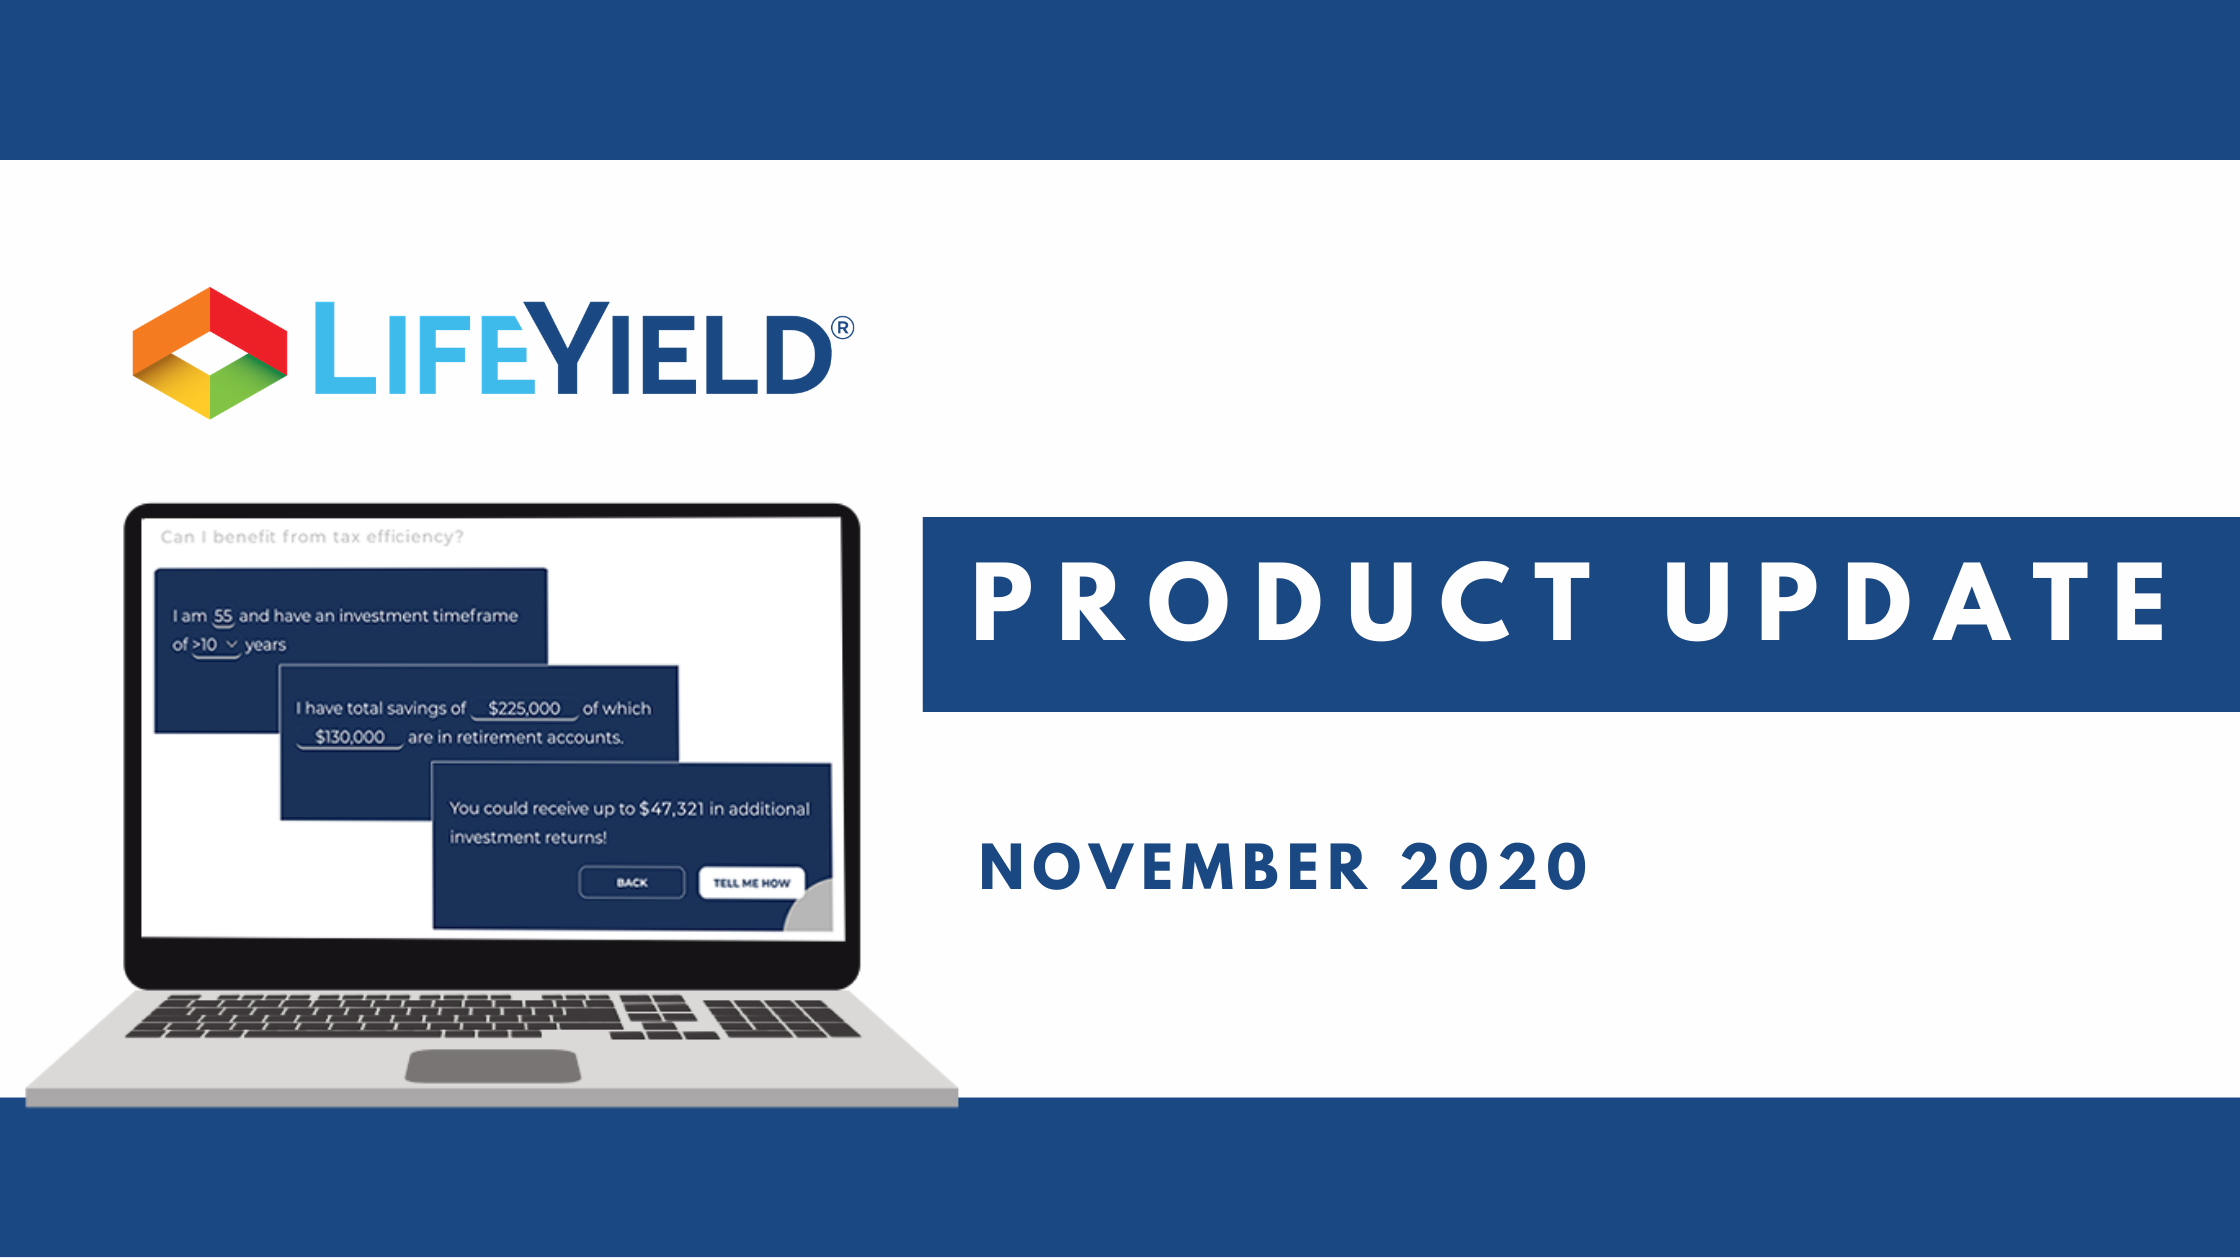 New Release: A cornucopia of new client engagement goodies for Fall 2020